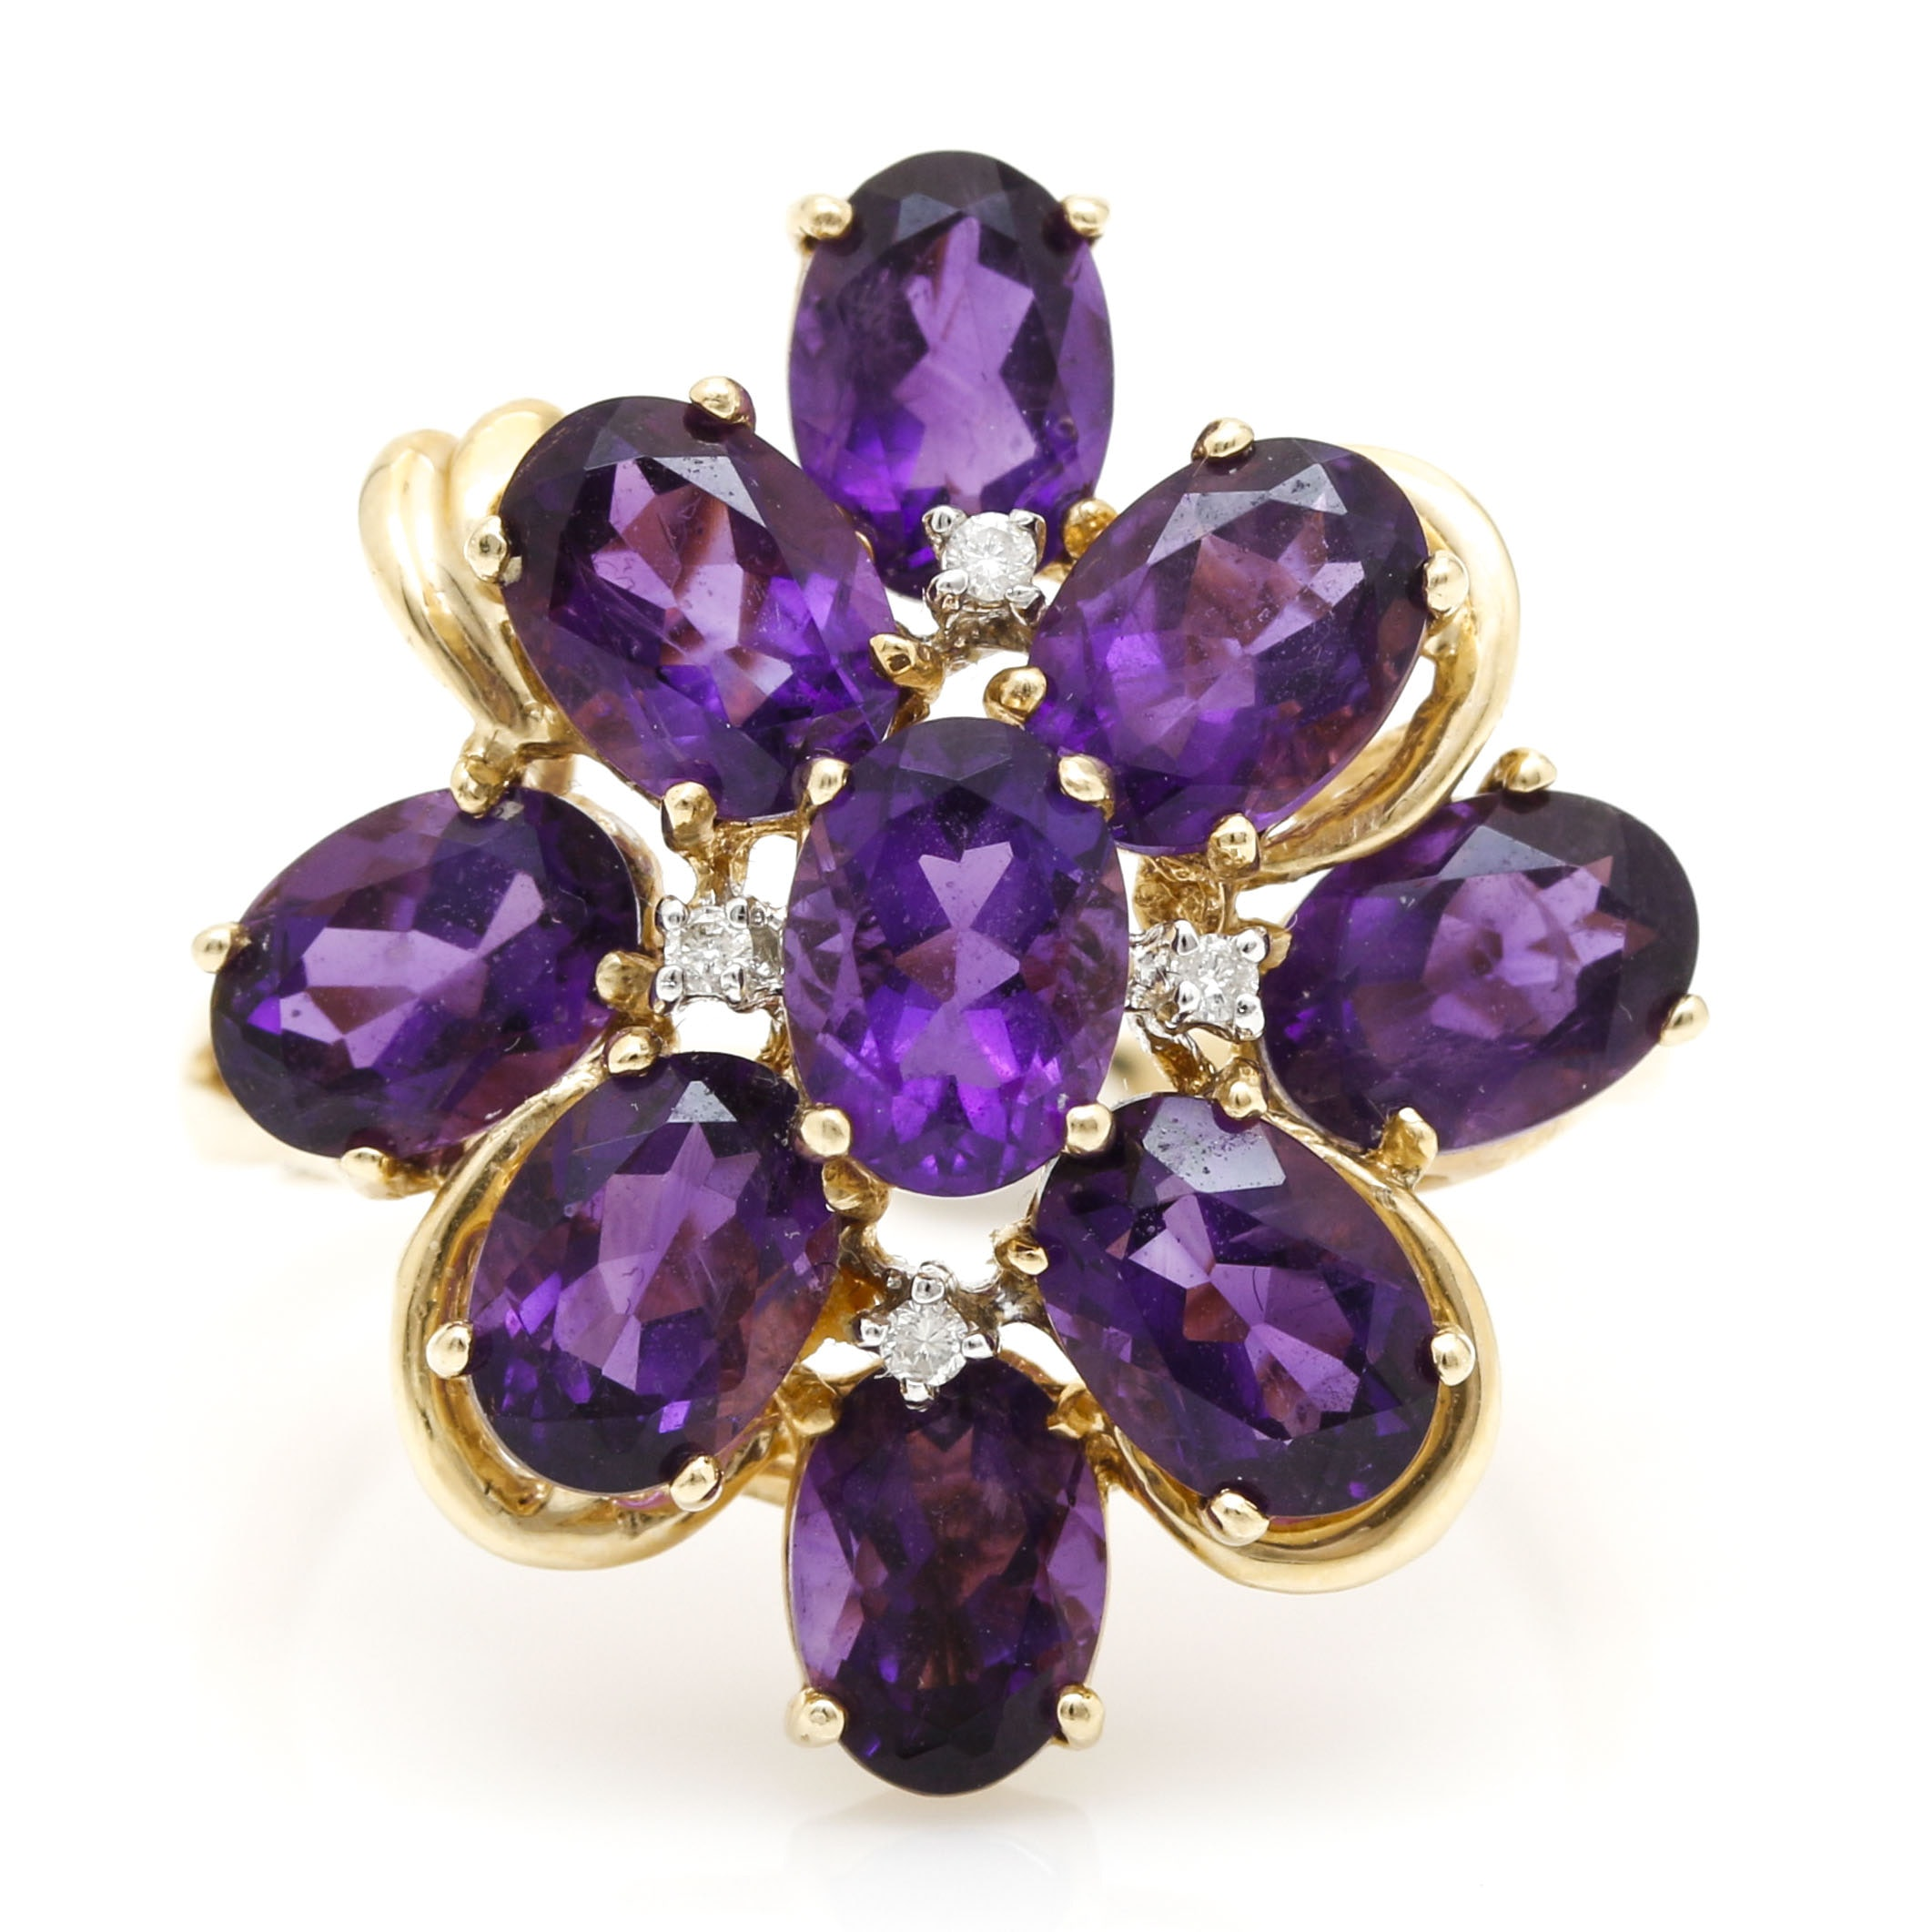 14K Yellow Gold Amethyst and Diamond Cluster Ring